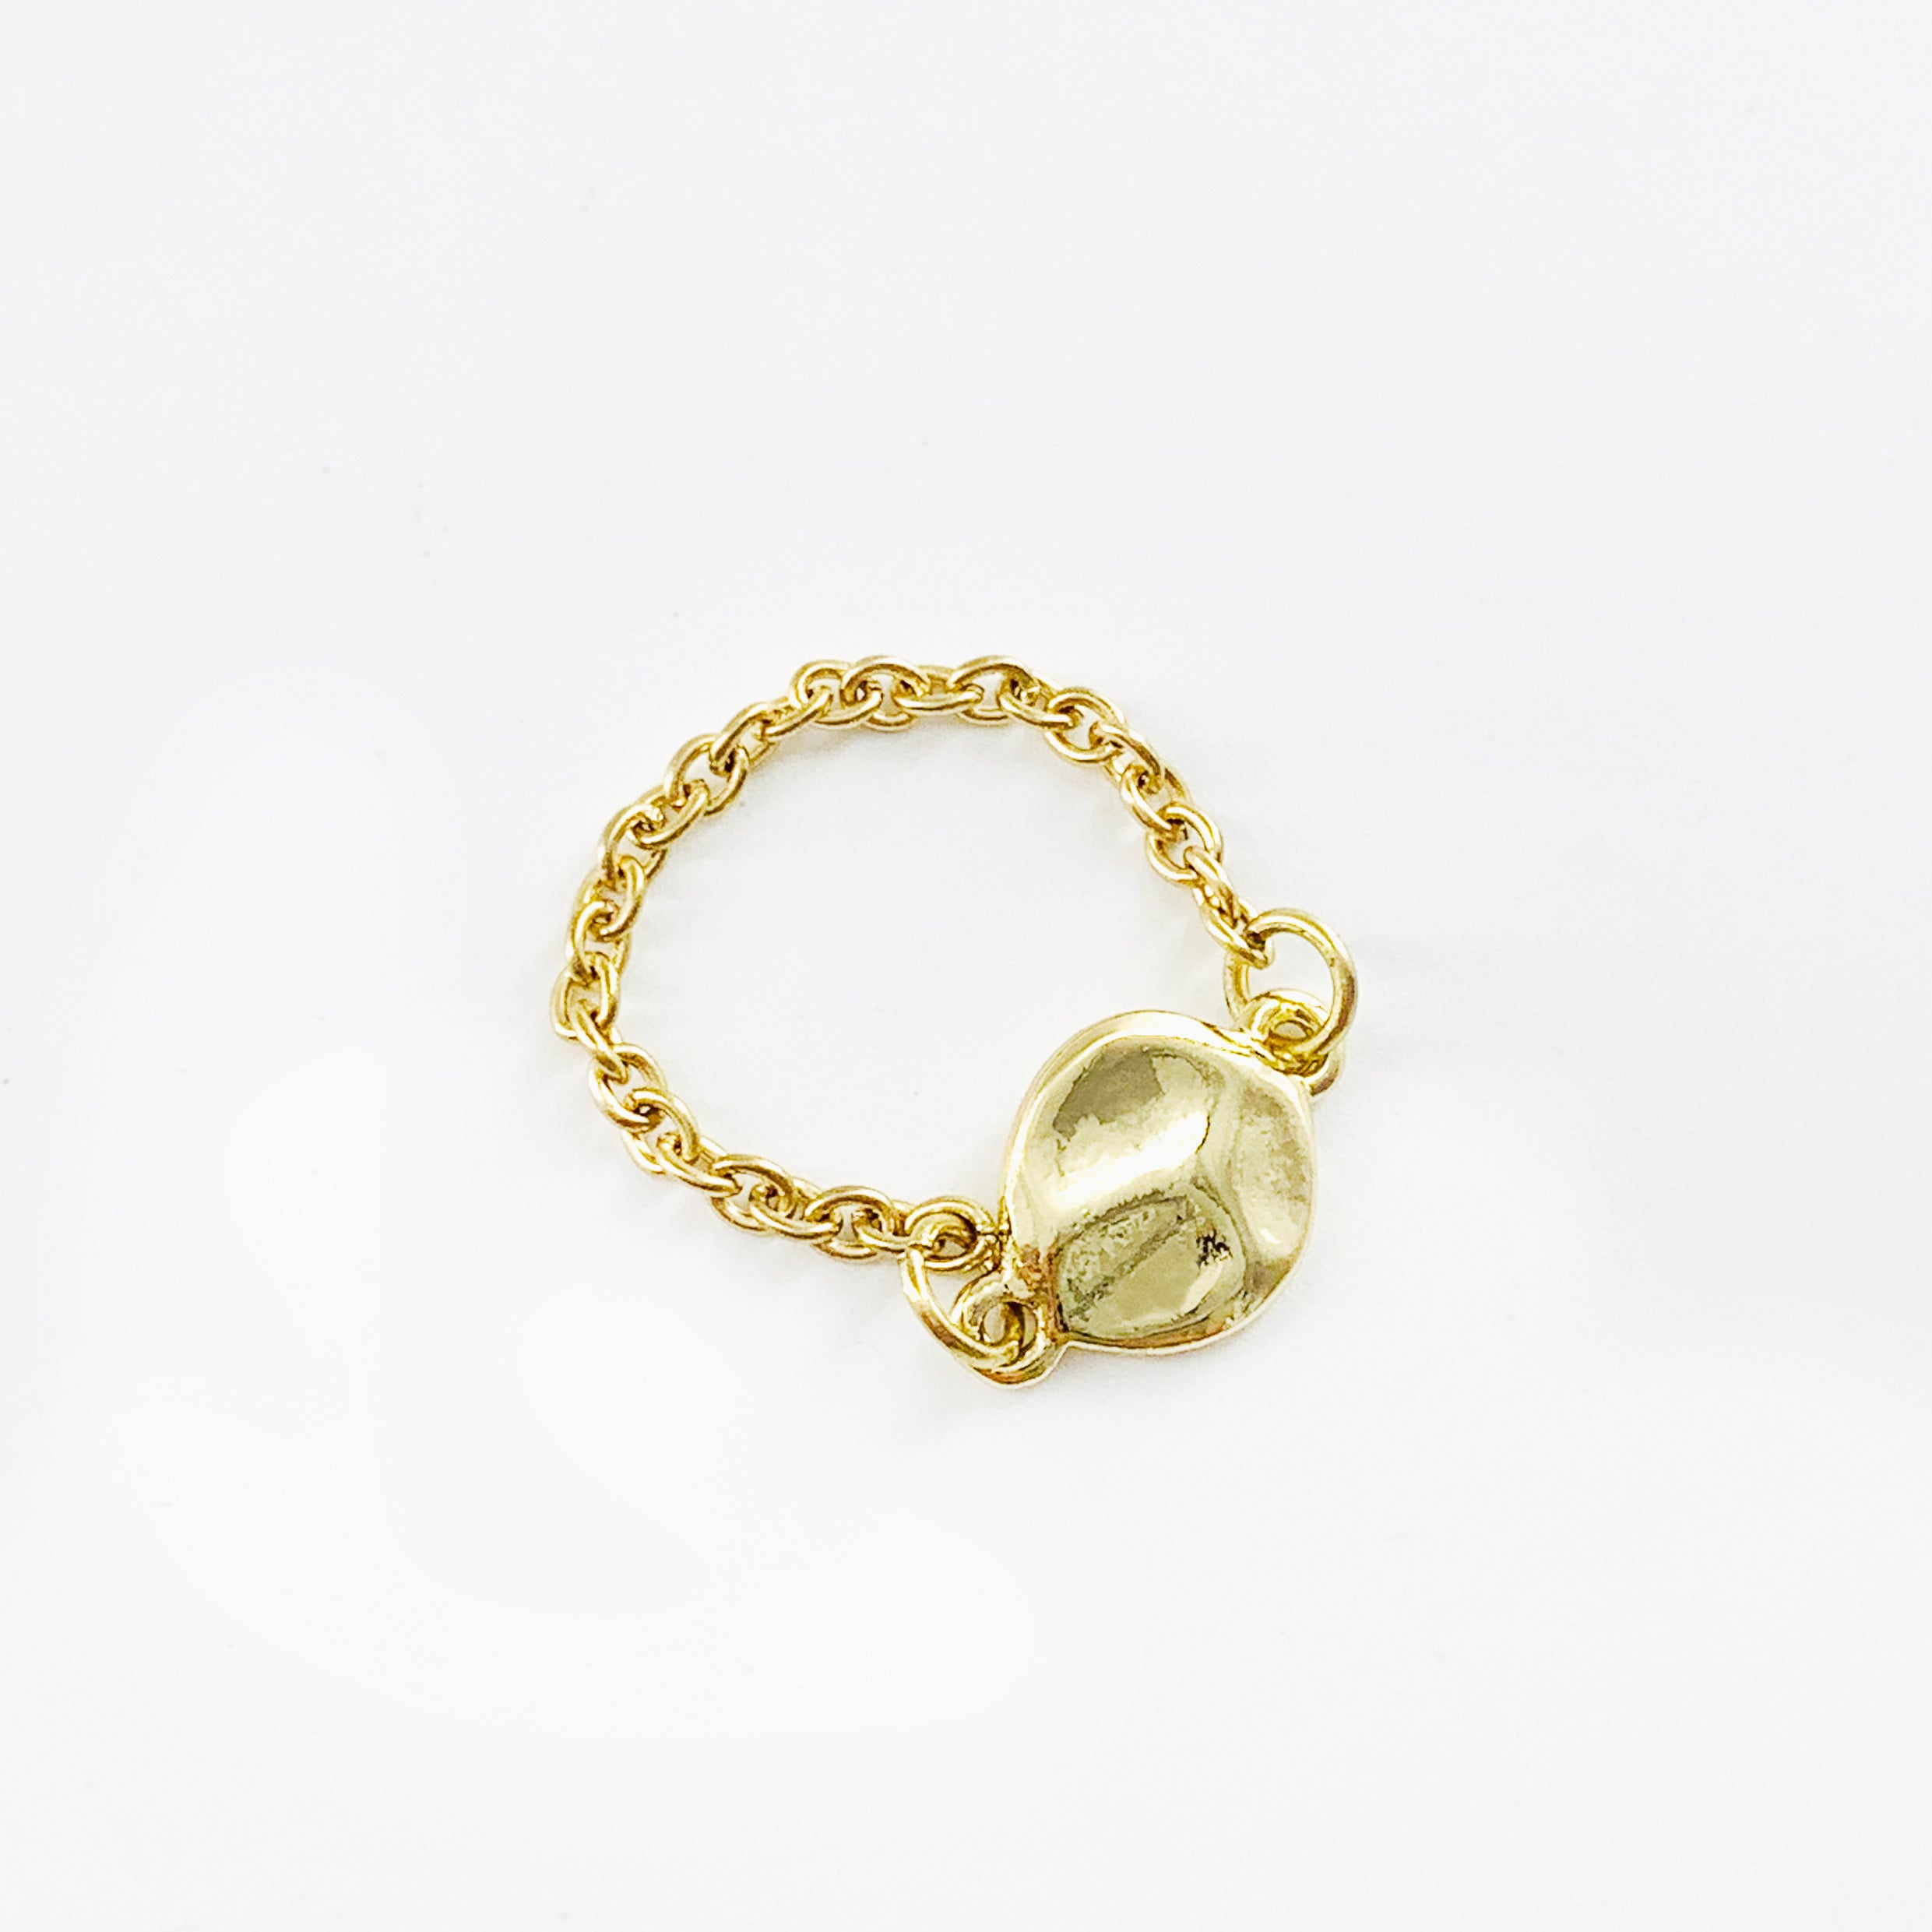 Gold disc ring with chain band